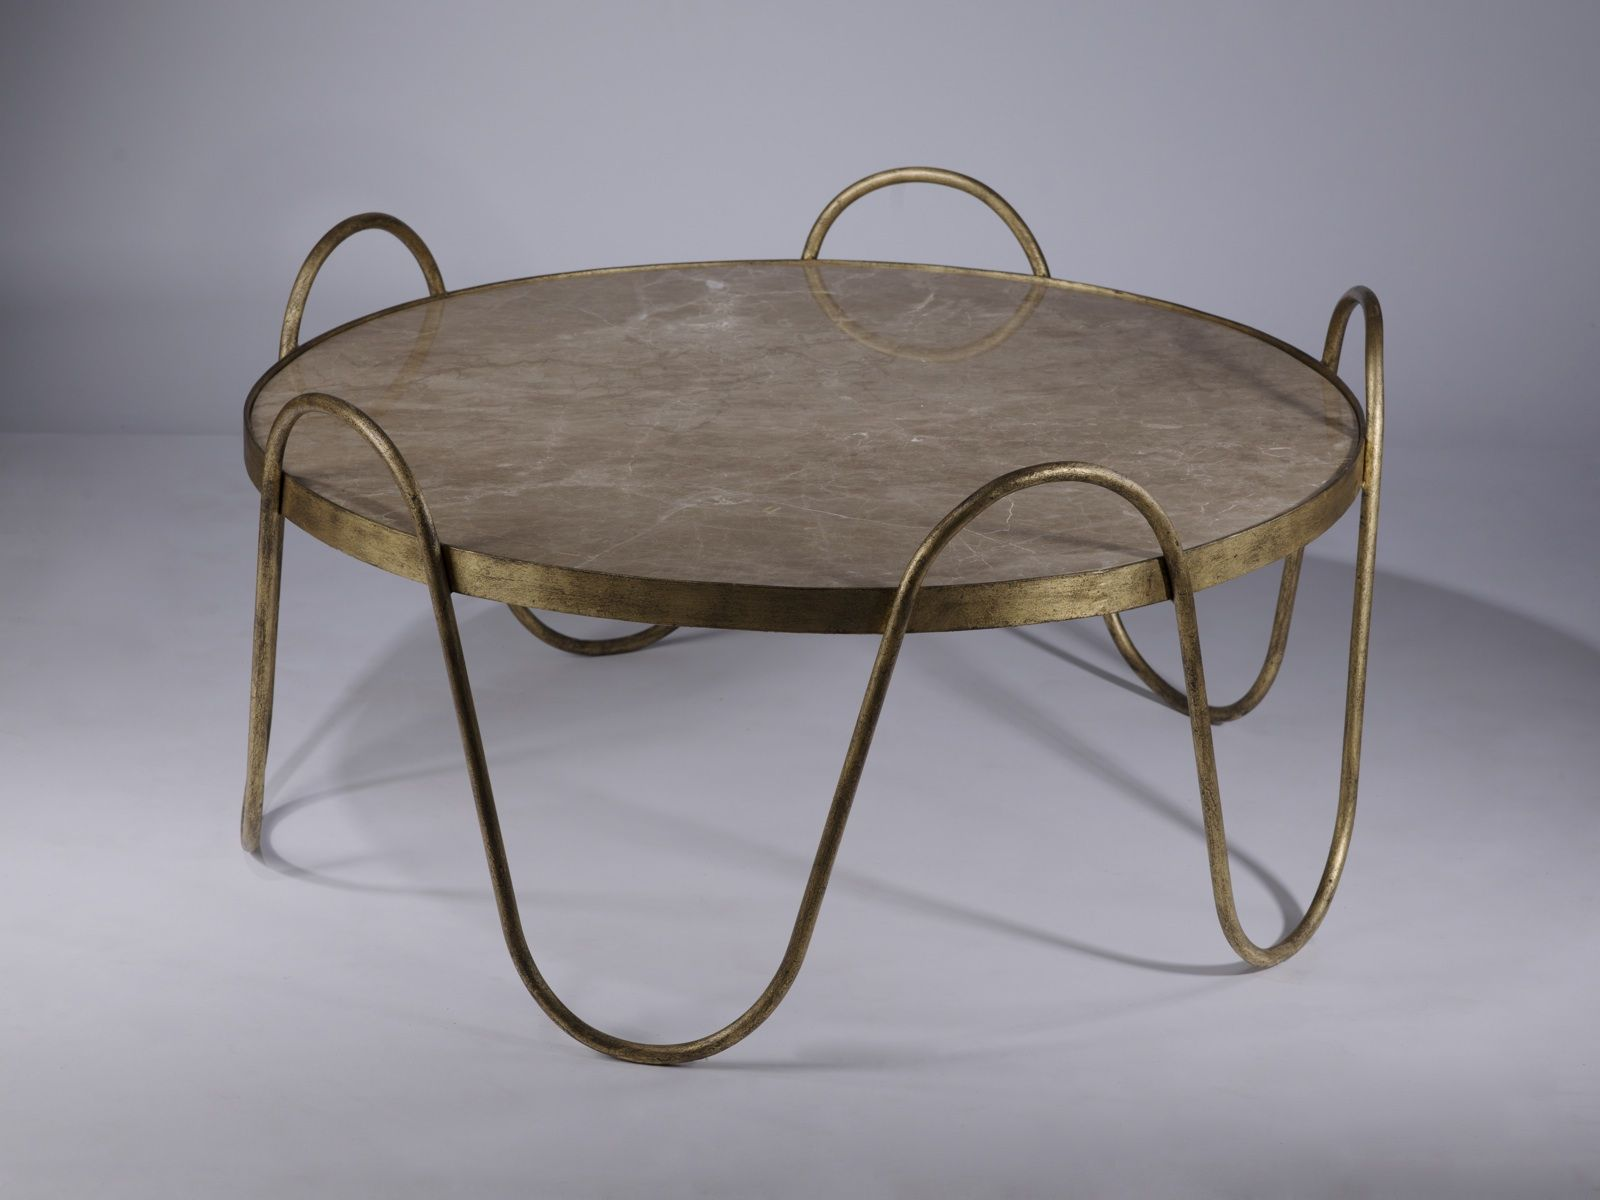 wrought iron drum coffee table in distressed gold leaf finish